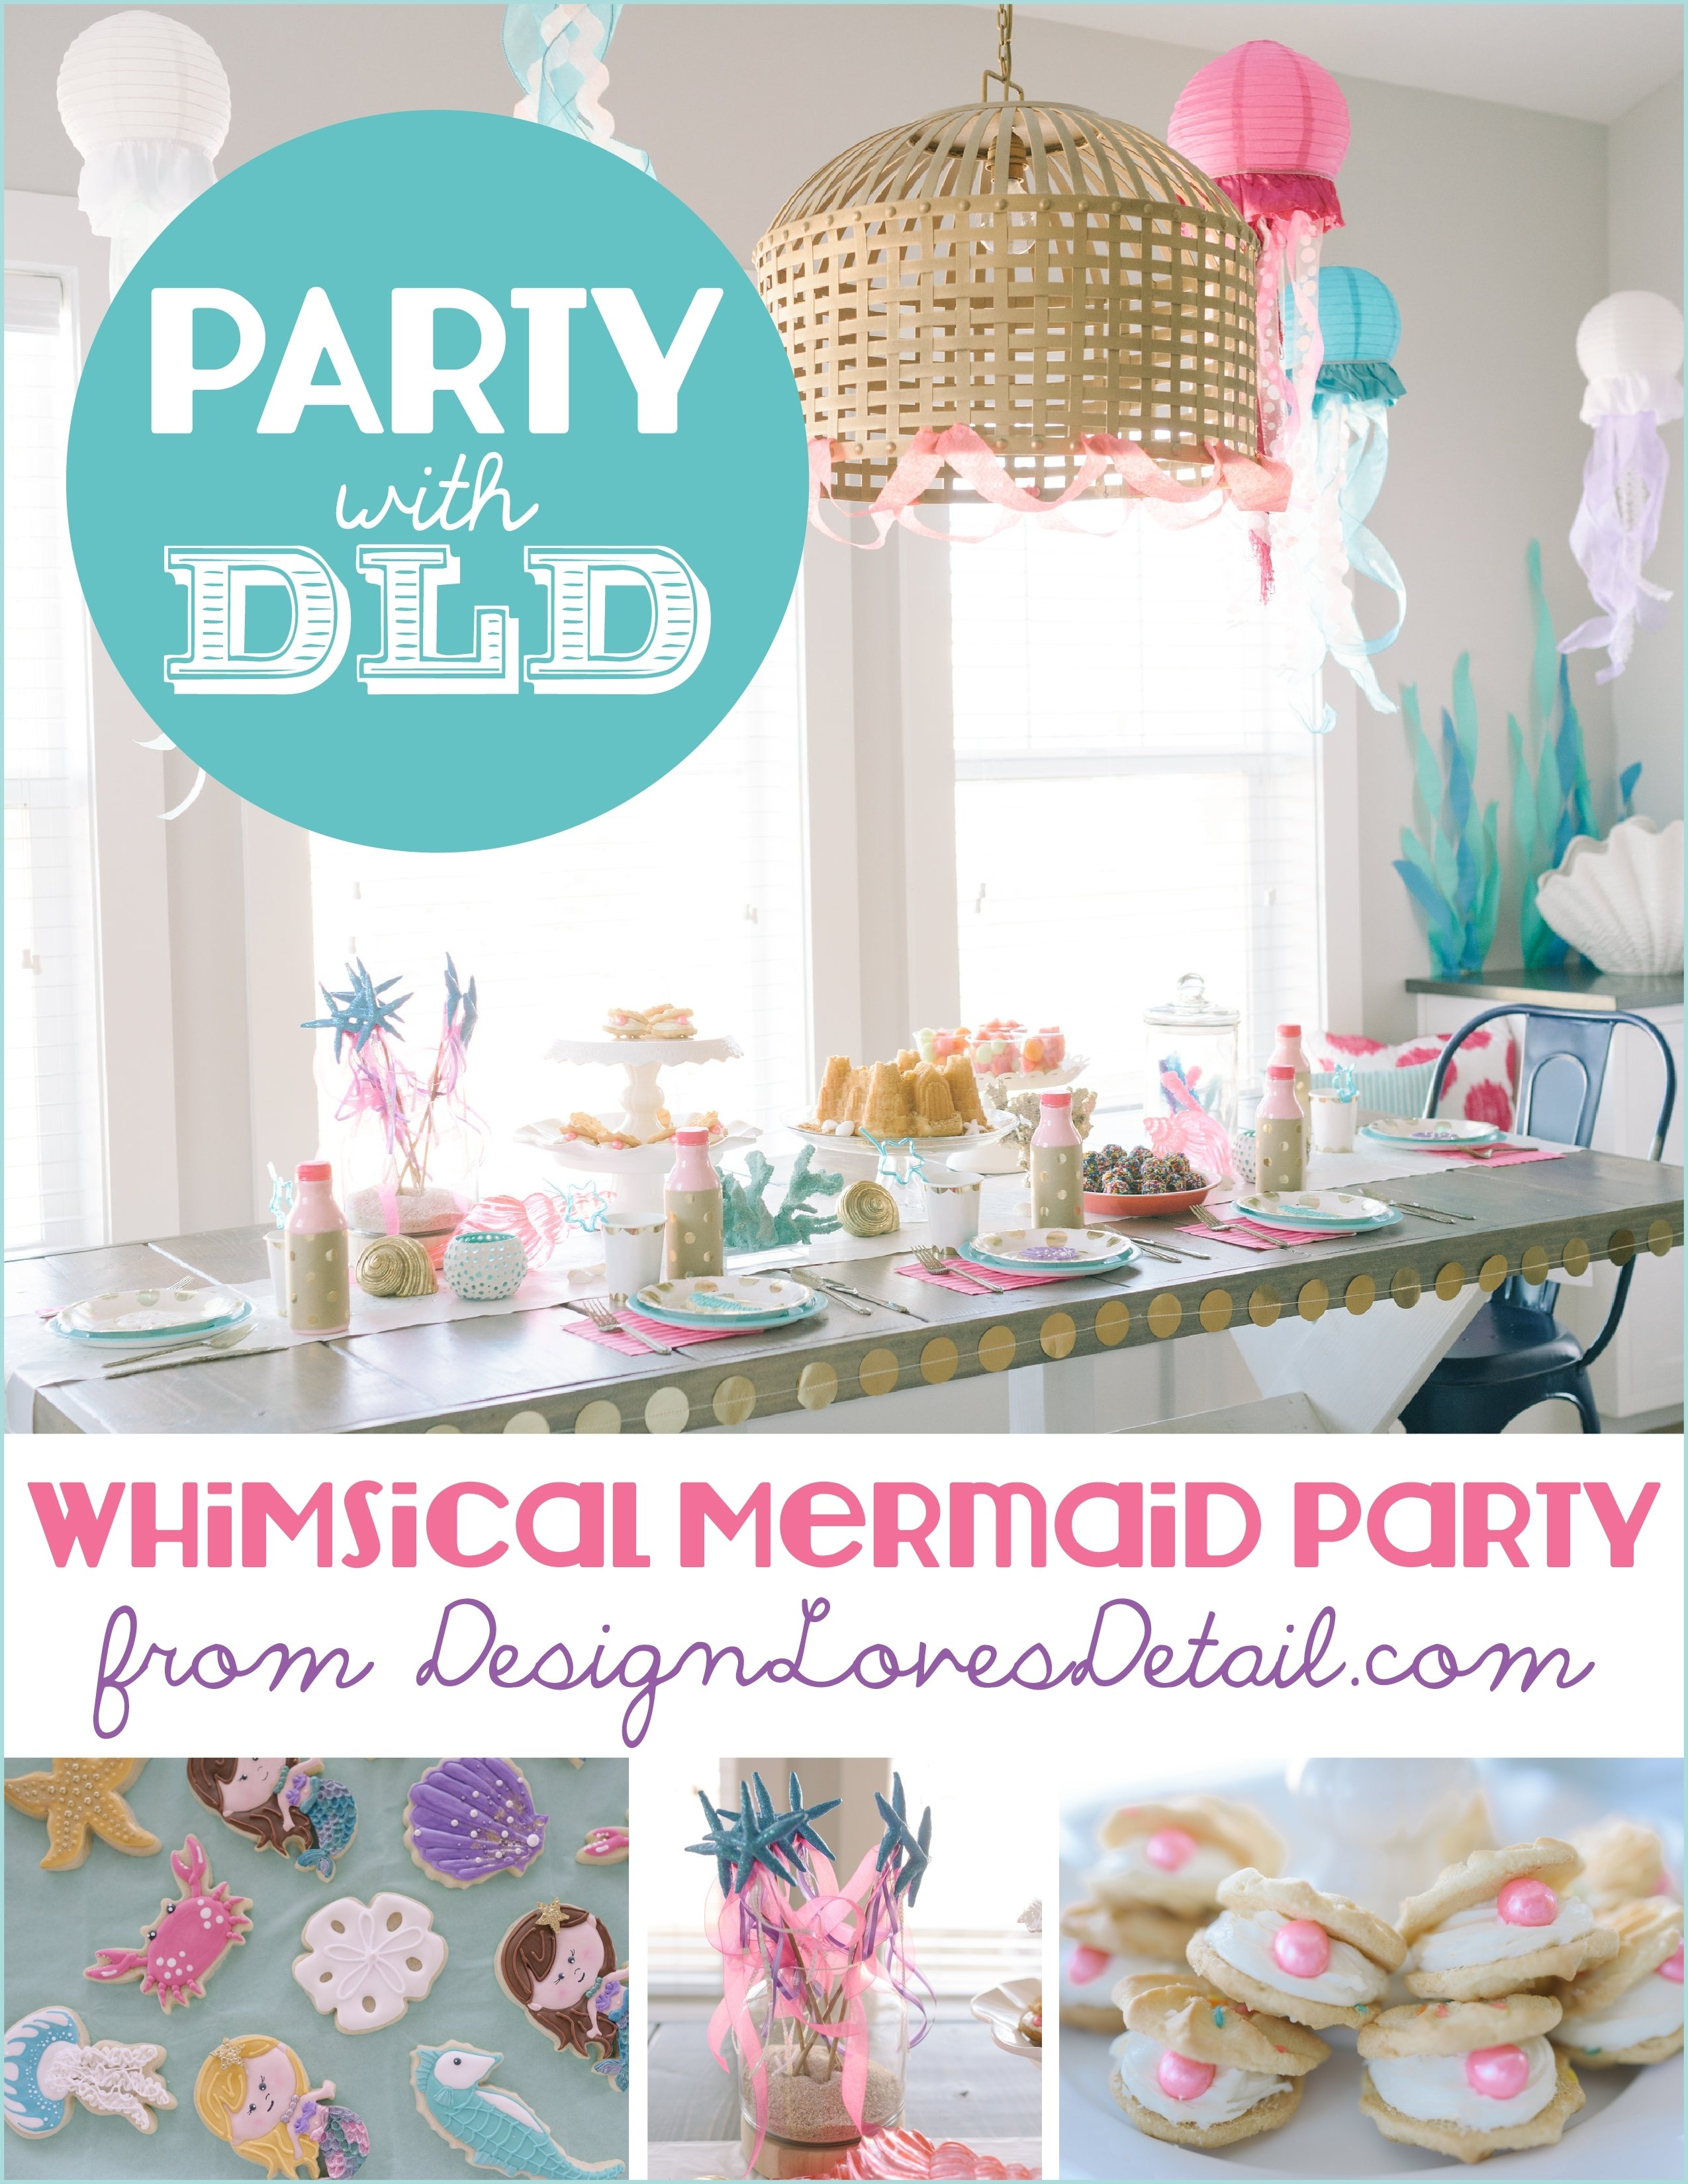 10 Stunning Craft Ideas For Birthday Parties diy mermaid birthday party ideasdesign loves detail 2020